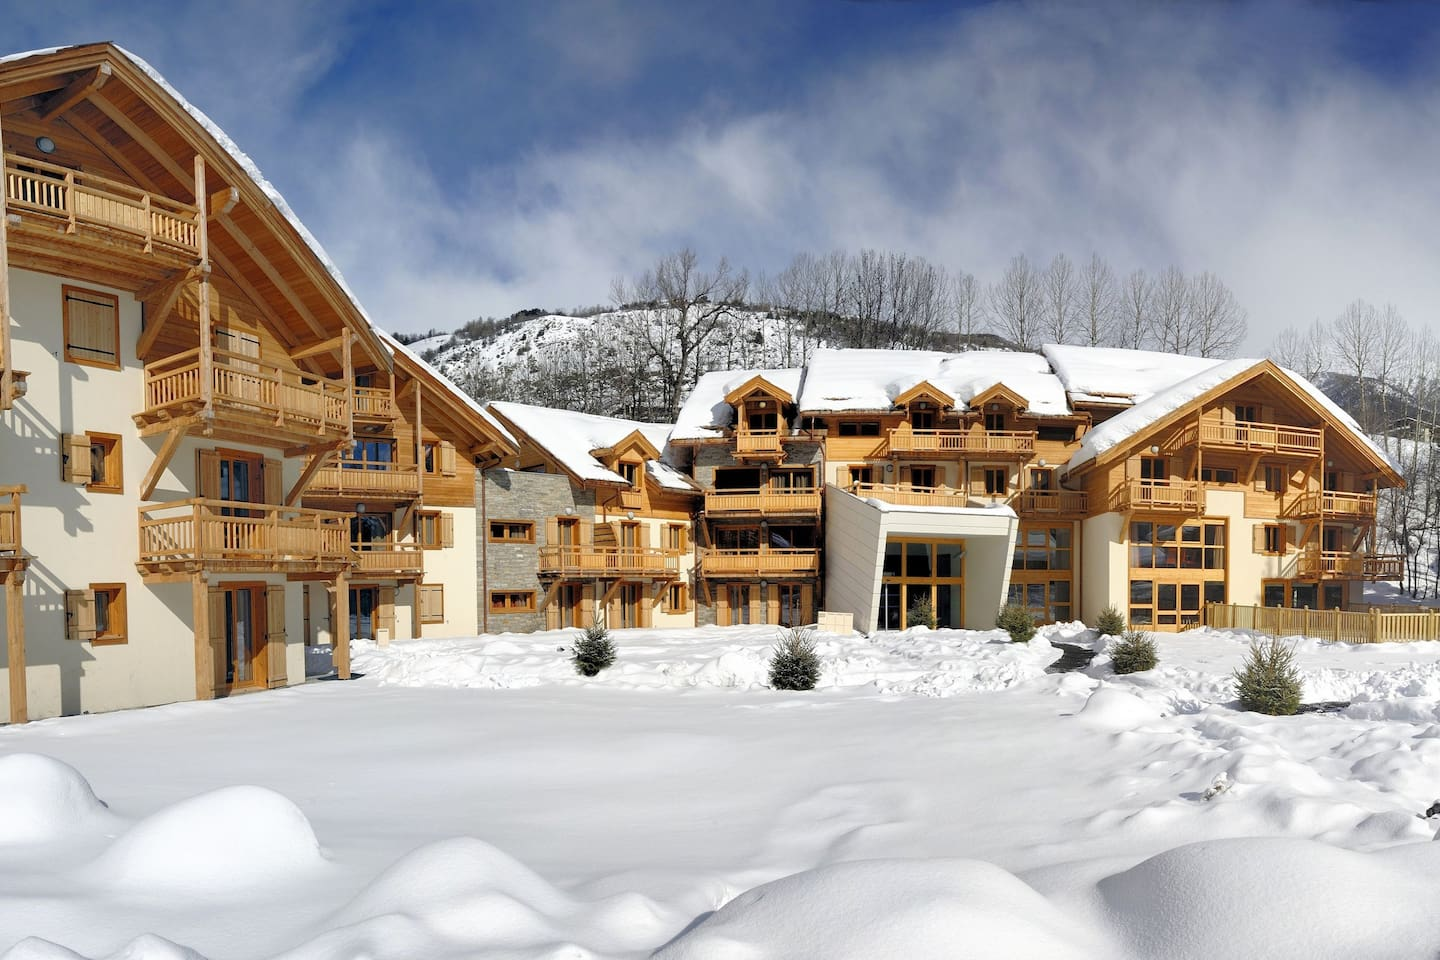 It's the perfect place to stay on your next ski vacation.